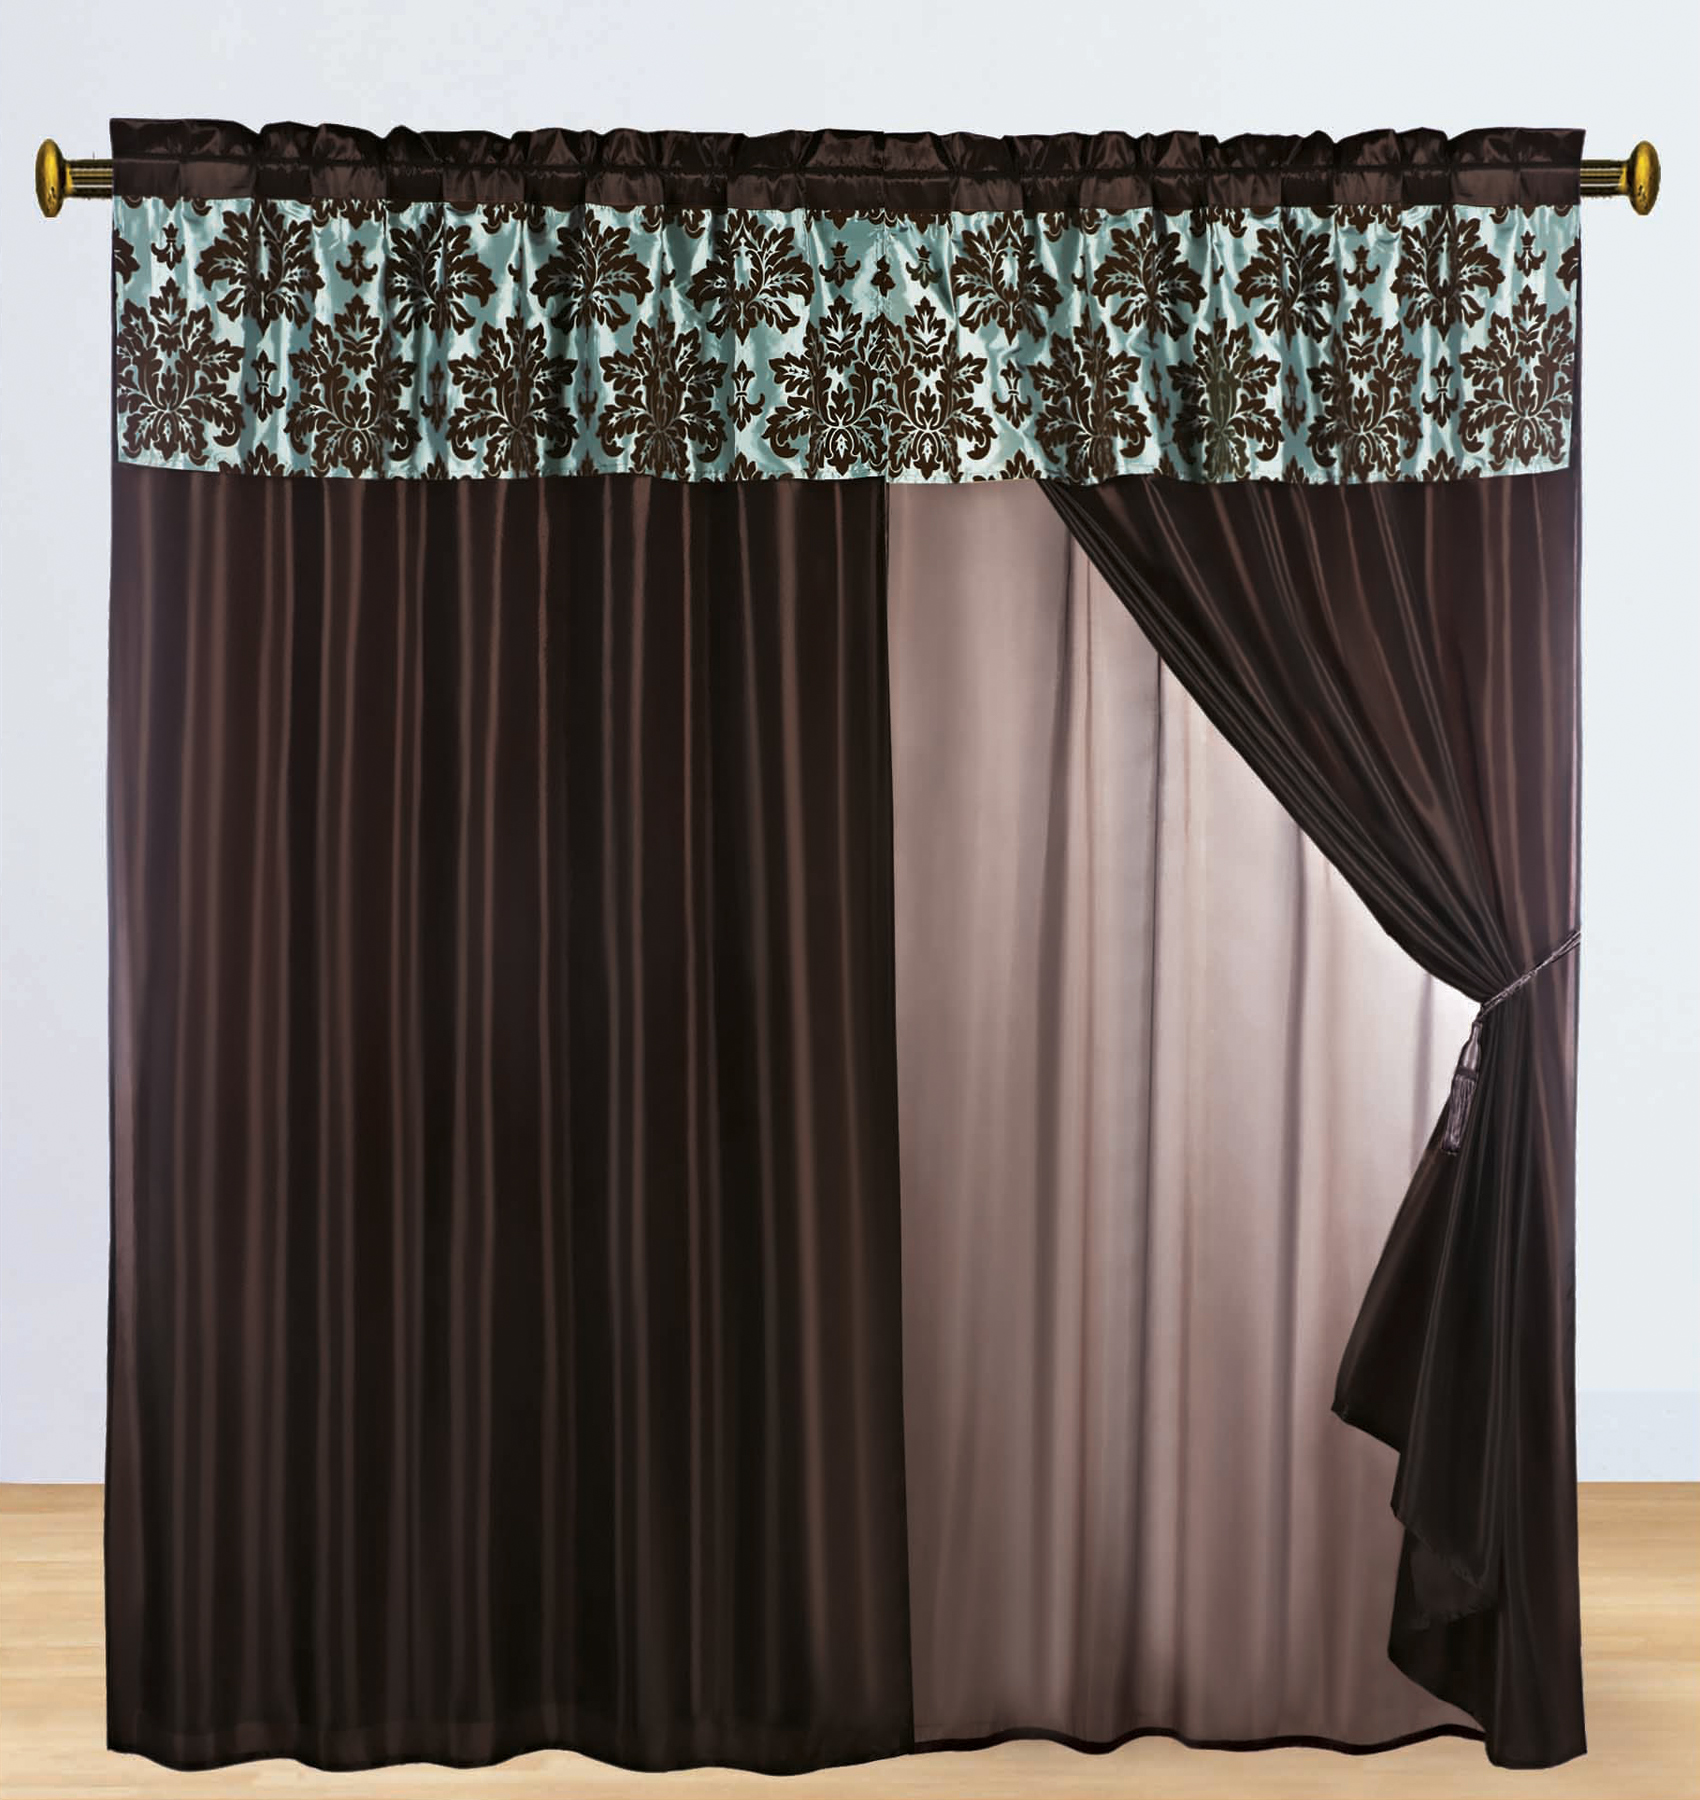 ... Flocking Damask Floral Valance Curtain Set Blue Brown Lining | eBay